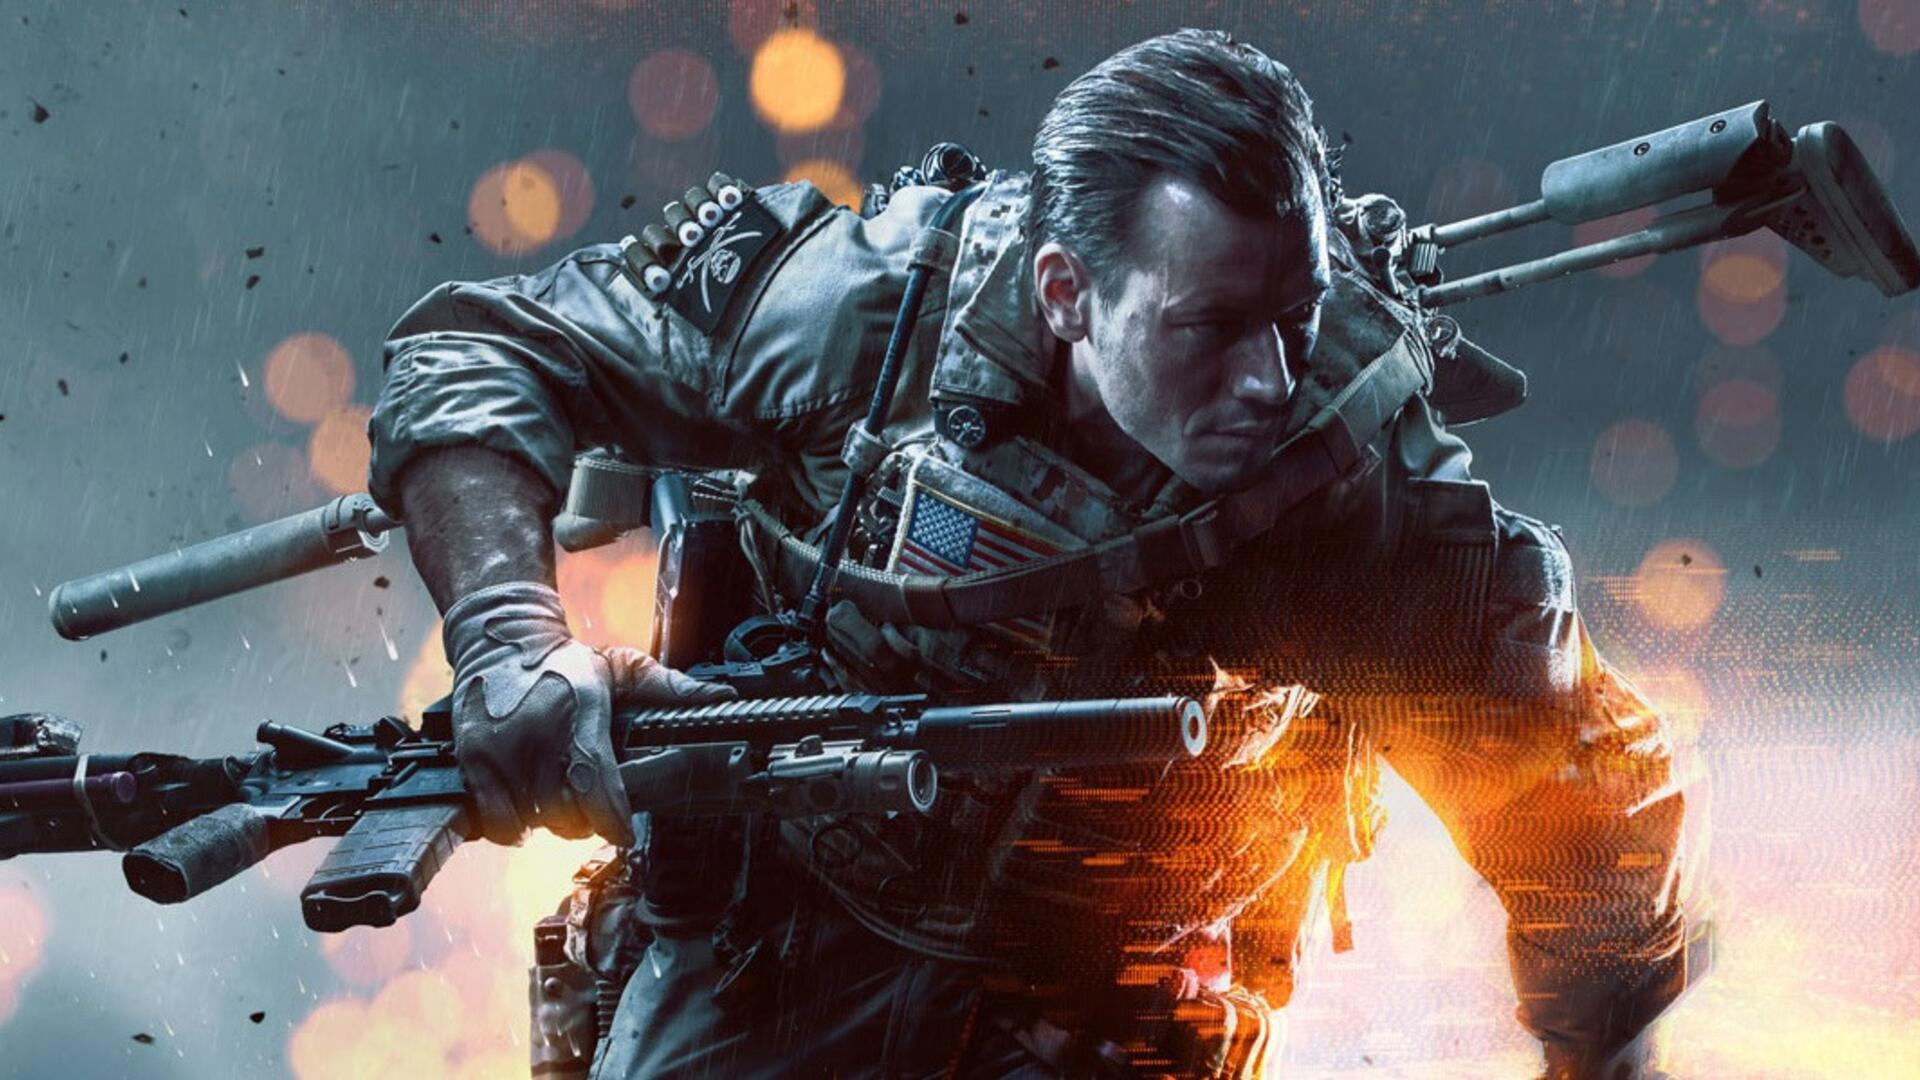 Battlefield 4 PS4 Review: Not Quite The PC Version